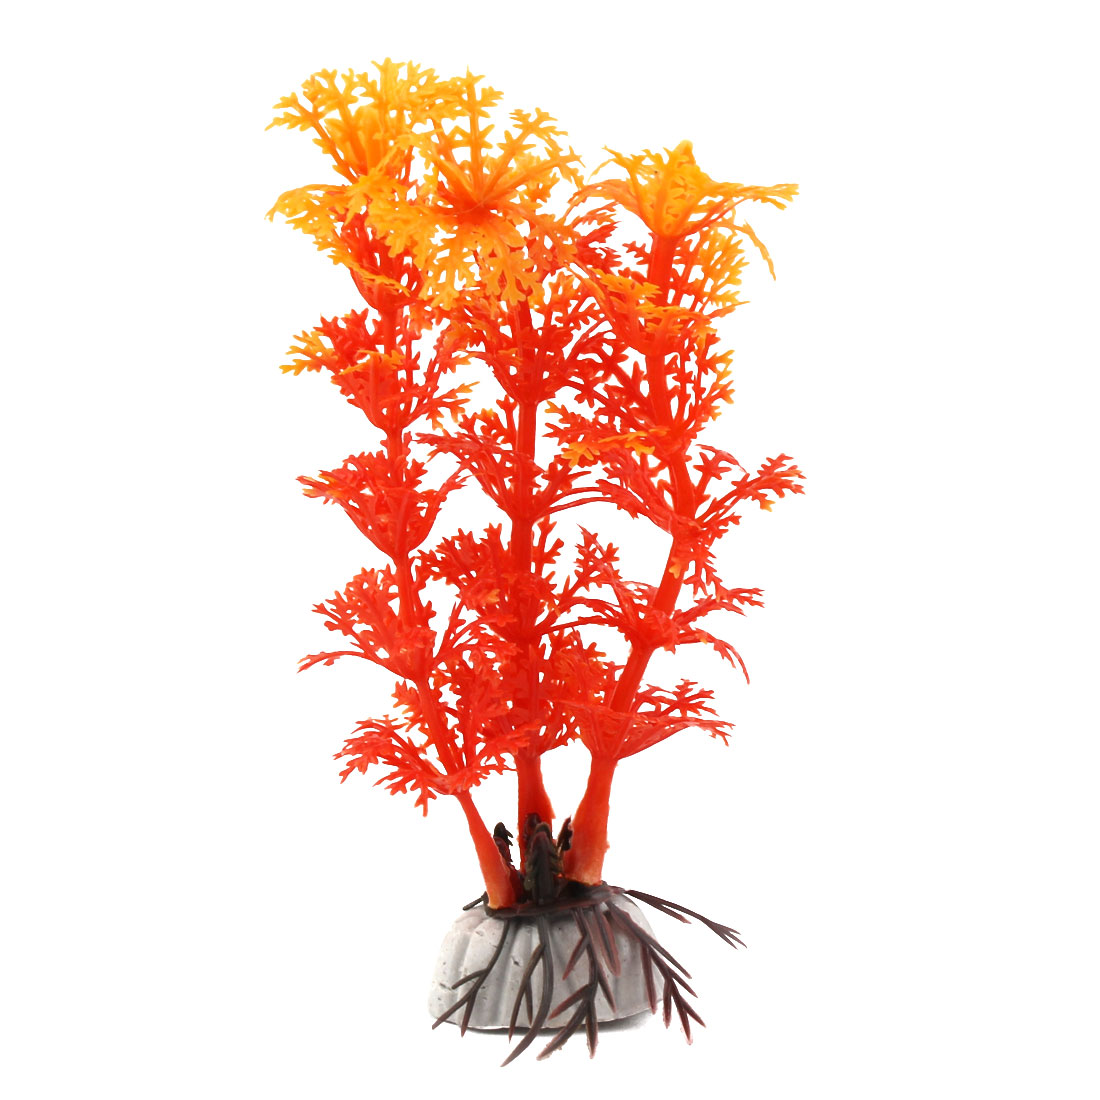 Fish Tank Plastic Manmade Emulational Grass Aquarium Plant Decor Orange Yellow